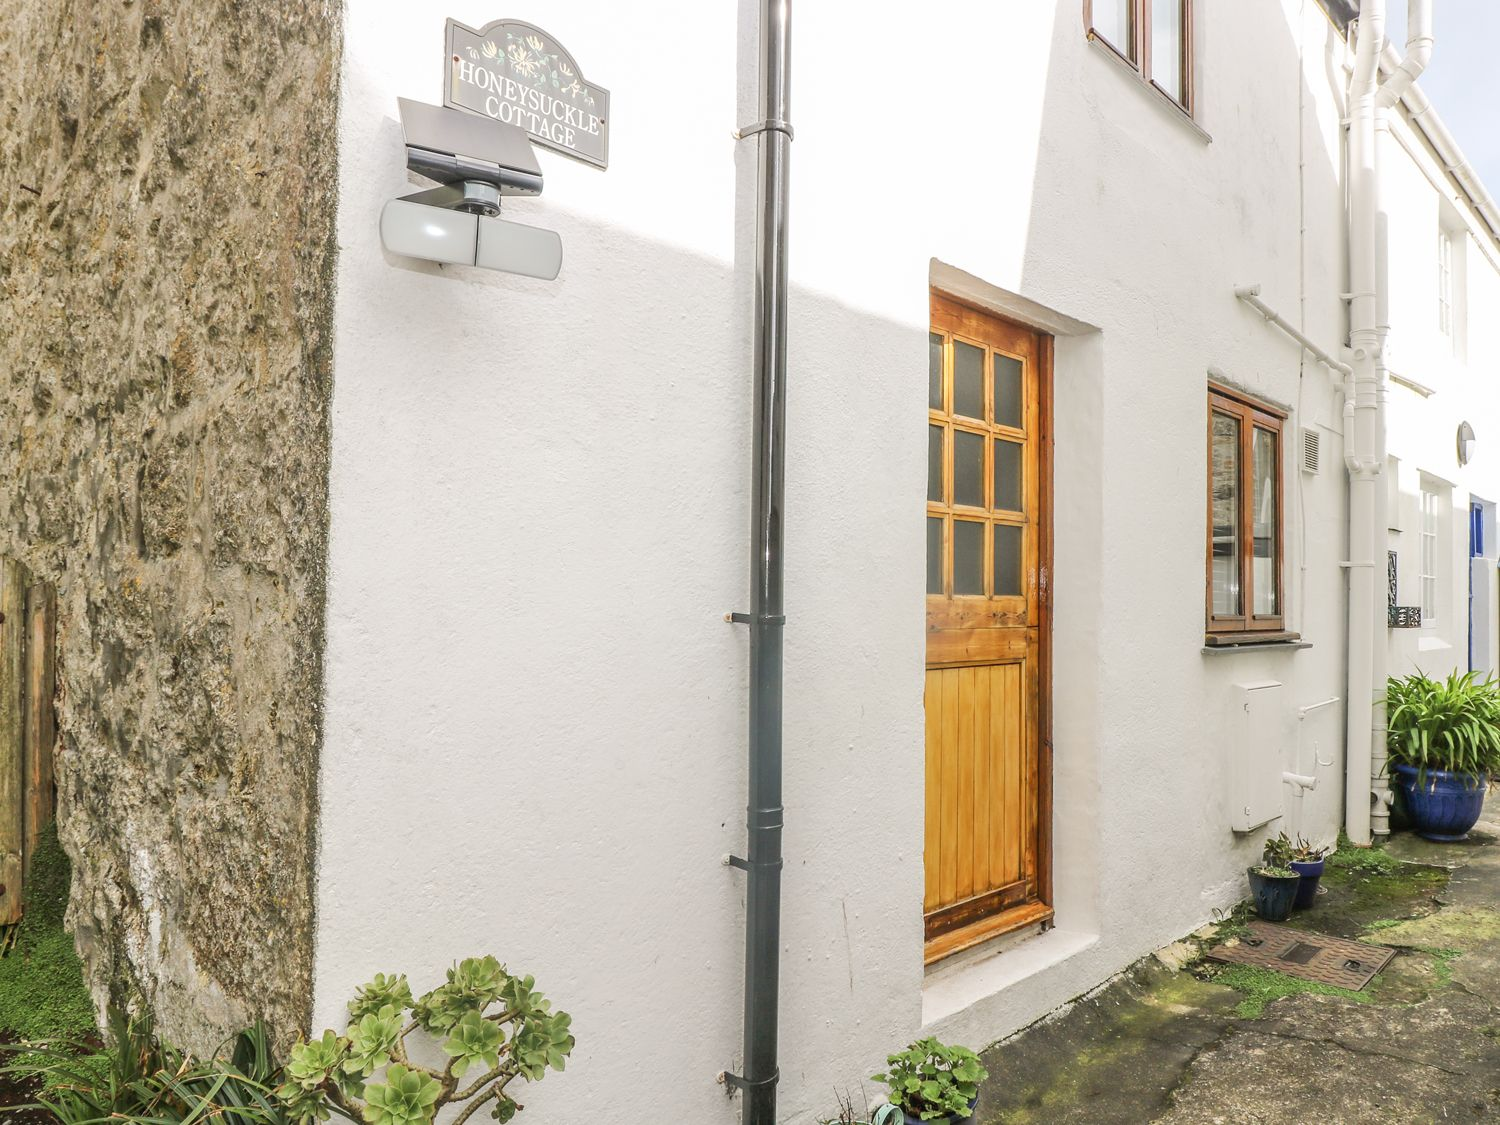 Honeysuckle Cottage - Cornwall - 959216 - photo 1